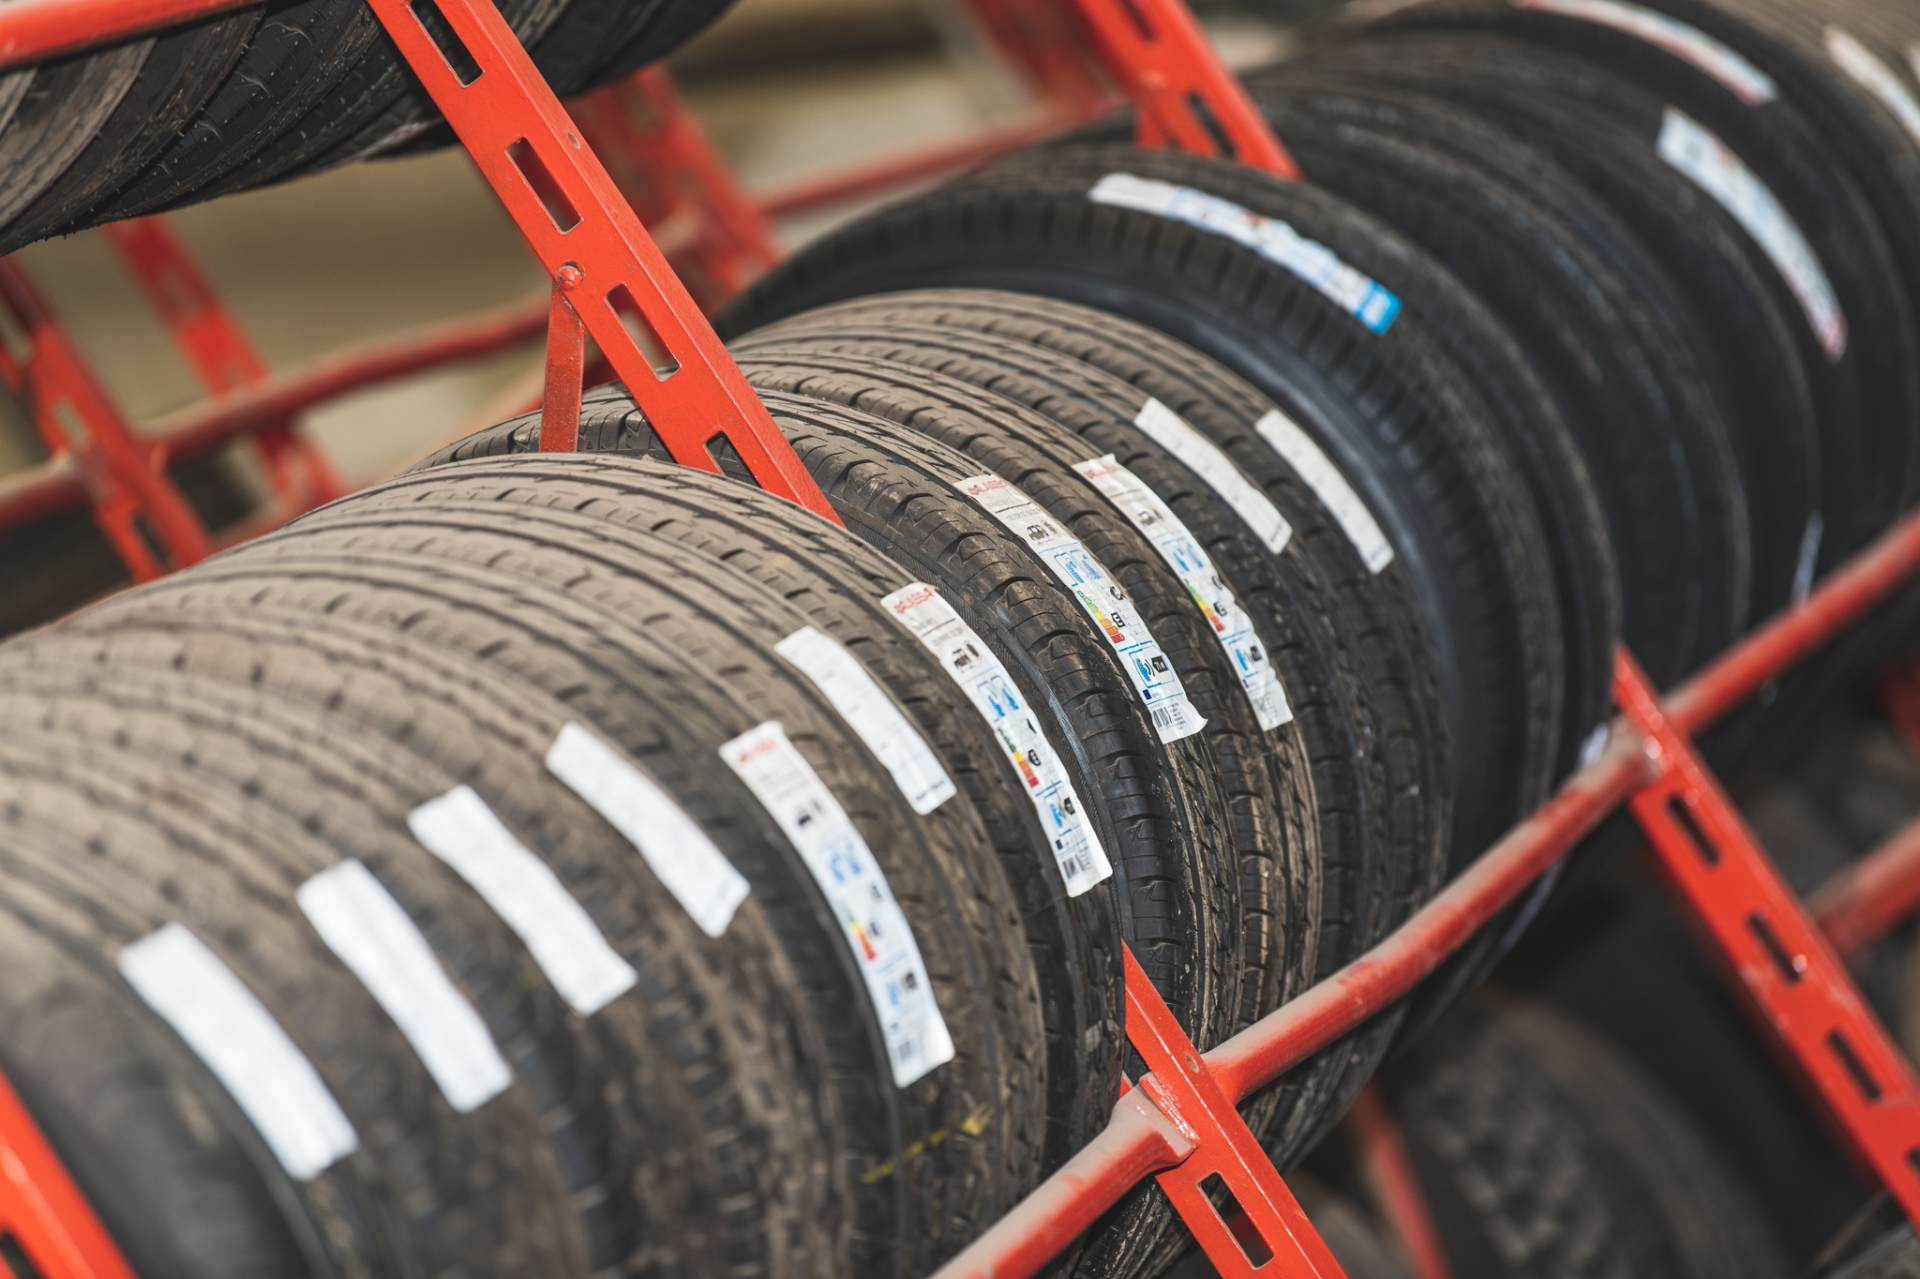 We stock a wide range of tyres for all types of commercial, plant, agricultural to suit your driving needs and budget.